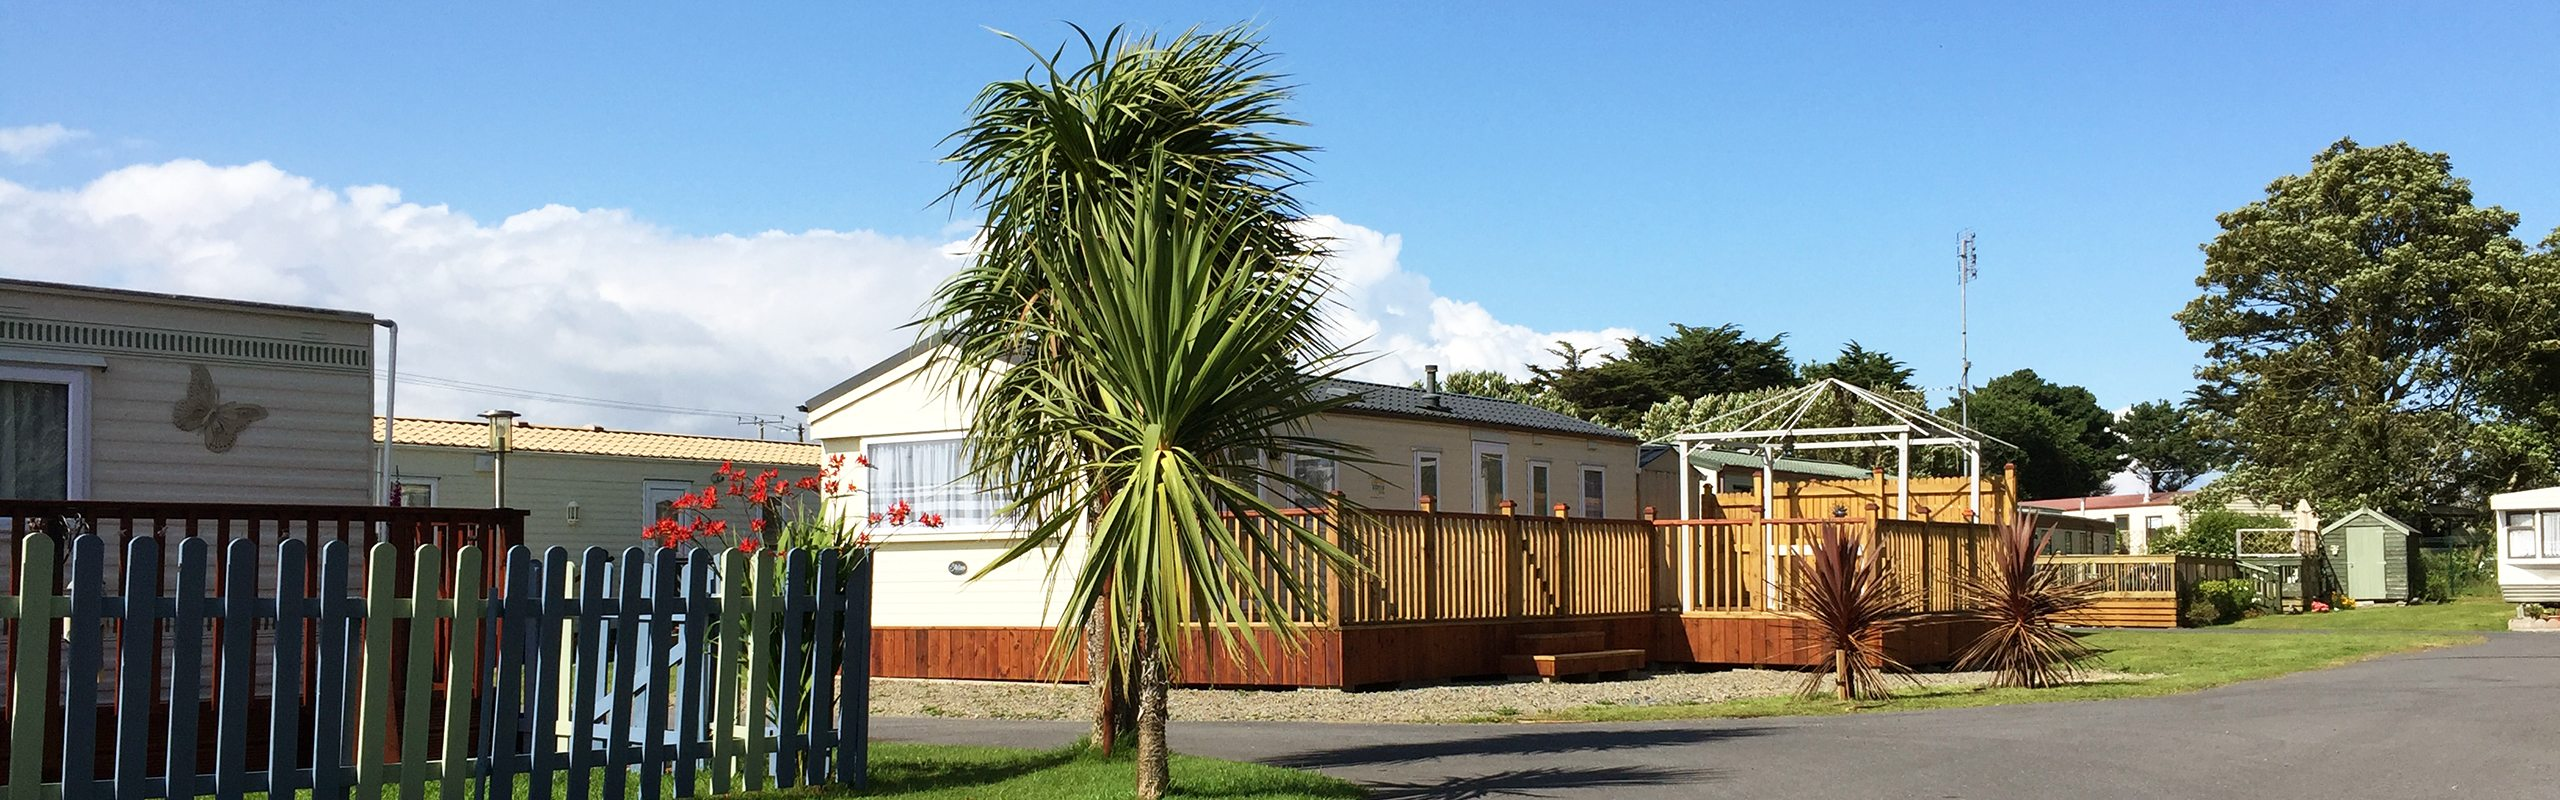 Central Holiday Park Rosslare | Holidays Homes | Seaside Resort